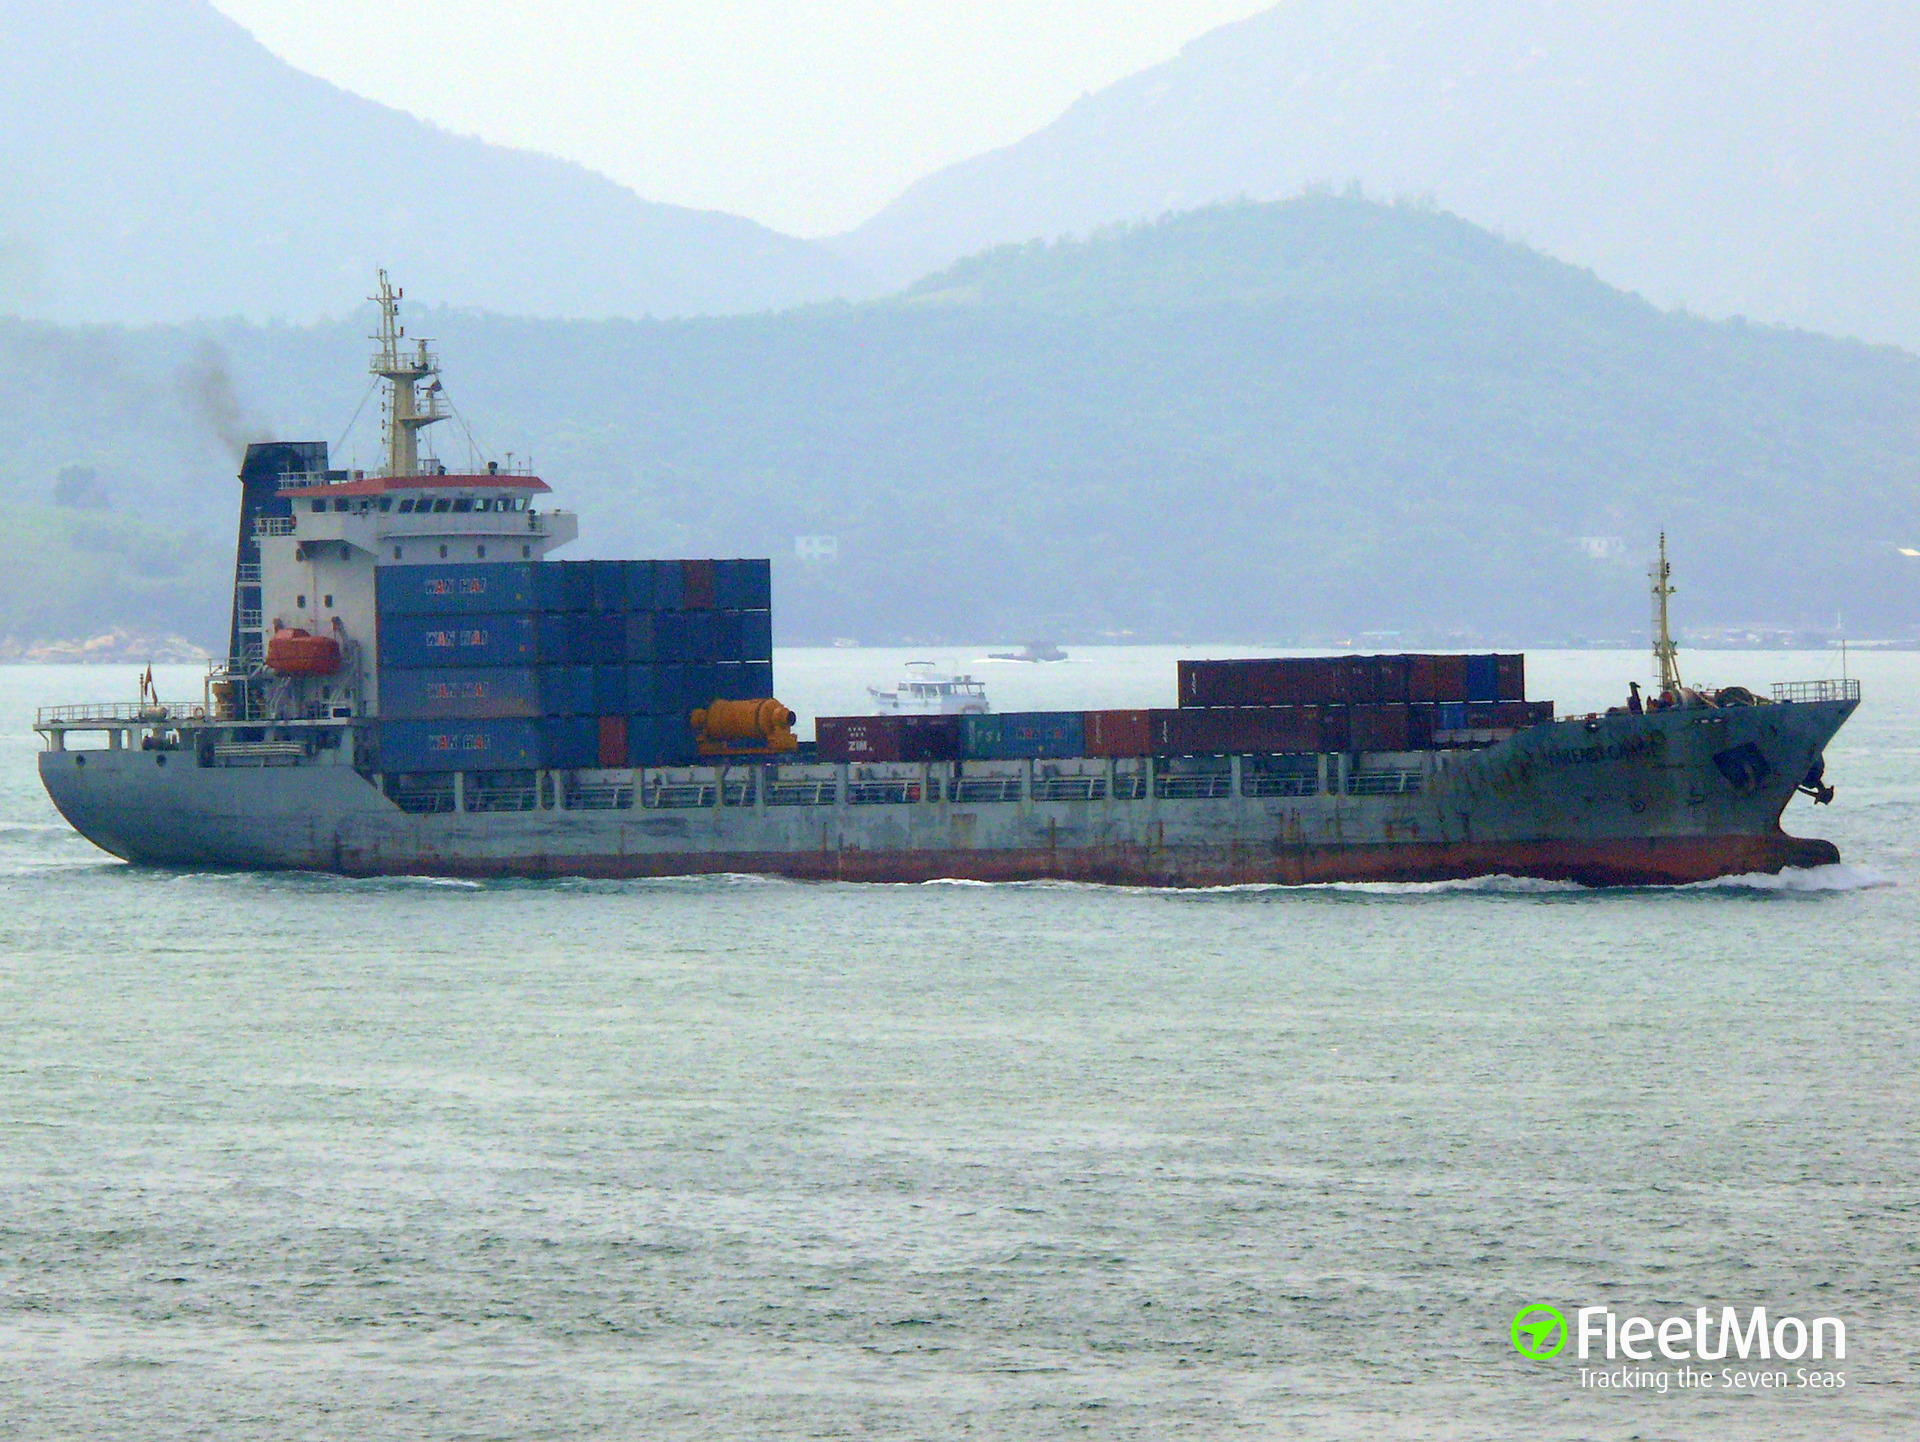 Boxship Far East Grace while berthing allided with three docked vessels, China